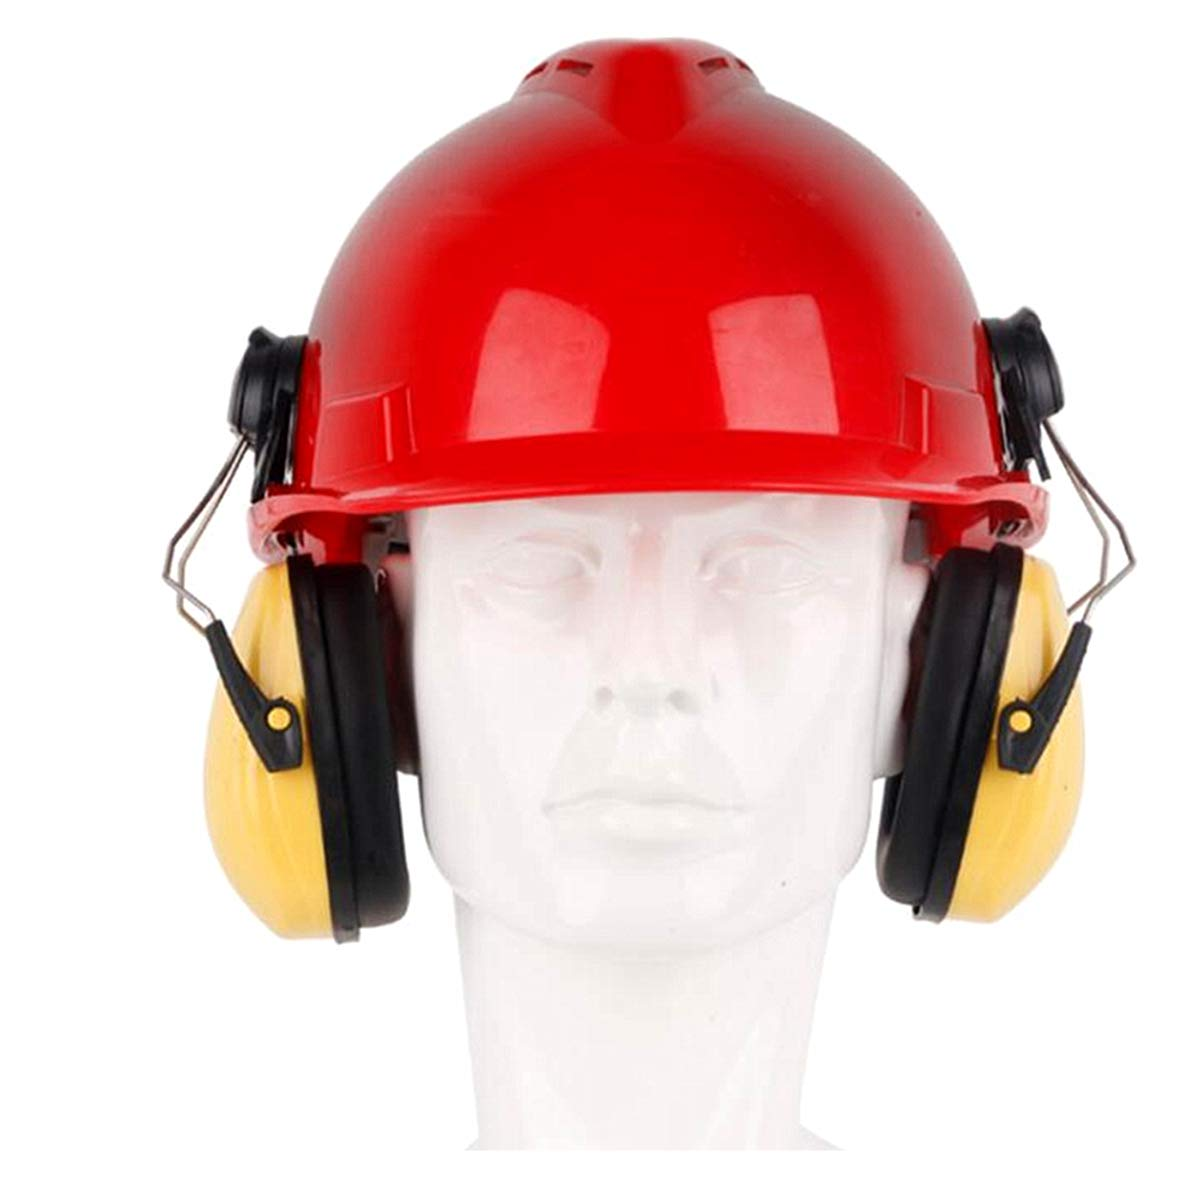 Buy FIRECLUB Hanging Helmet-Type soundproof Earmuffs, Noise-Proof site,  Logging, Grinding, Noise Reduction, Protective Earmuffs Online at Low  Prices in India - Amazon.in